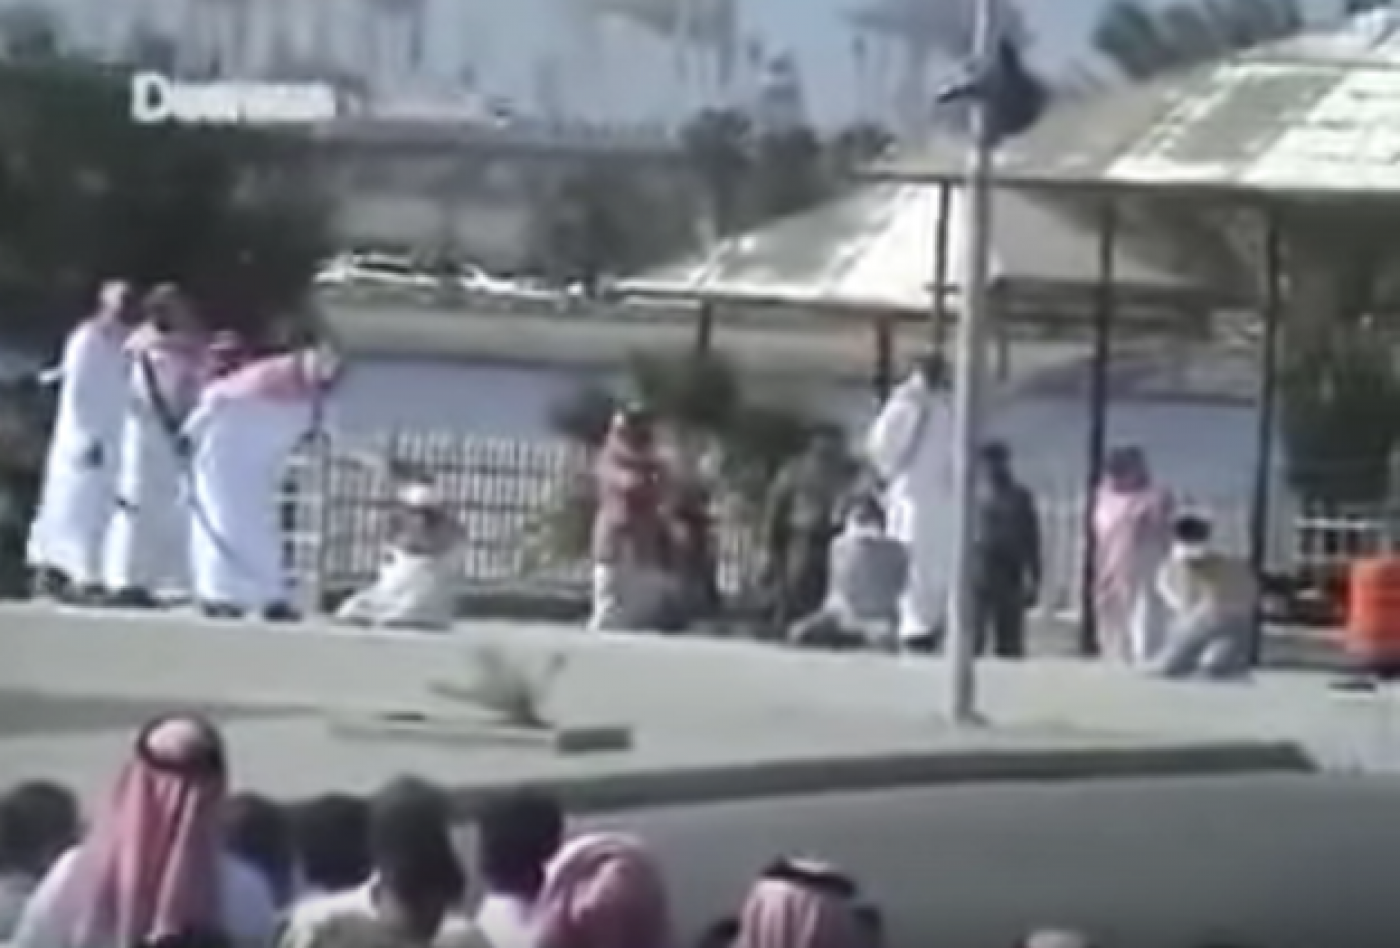 Rare footage shows public beheadings in Saudi Arabia